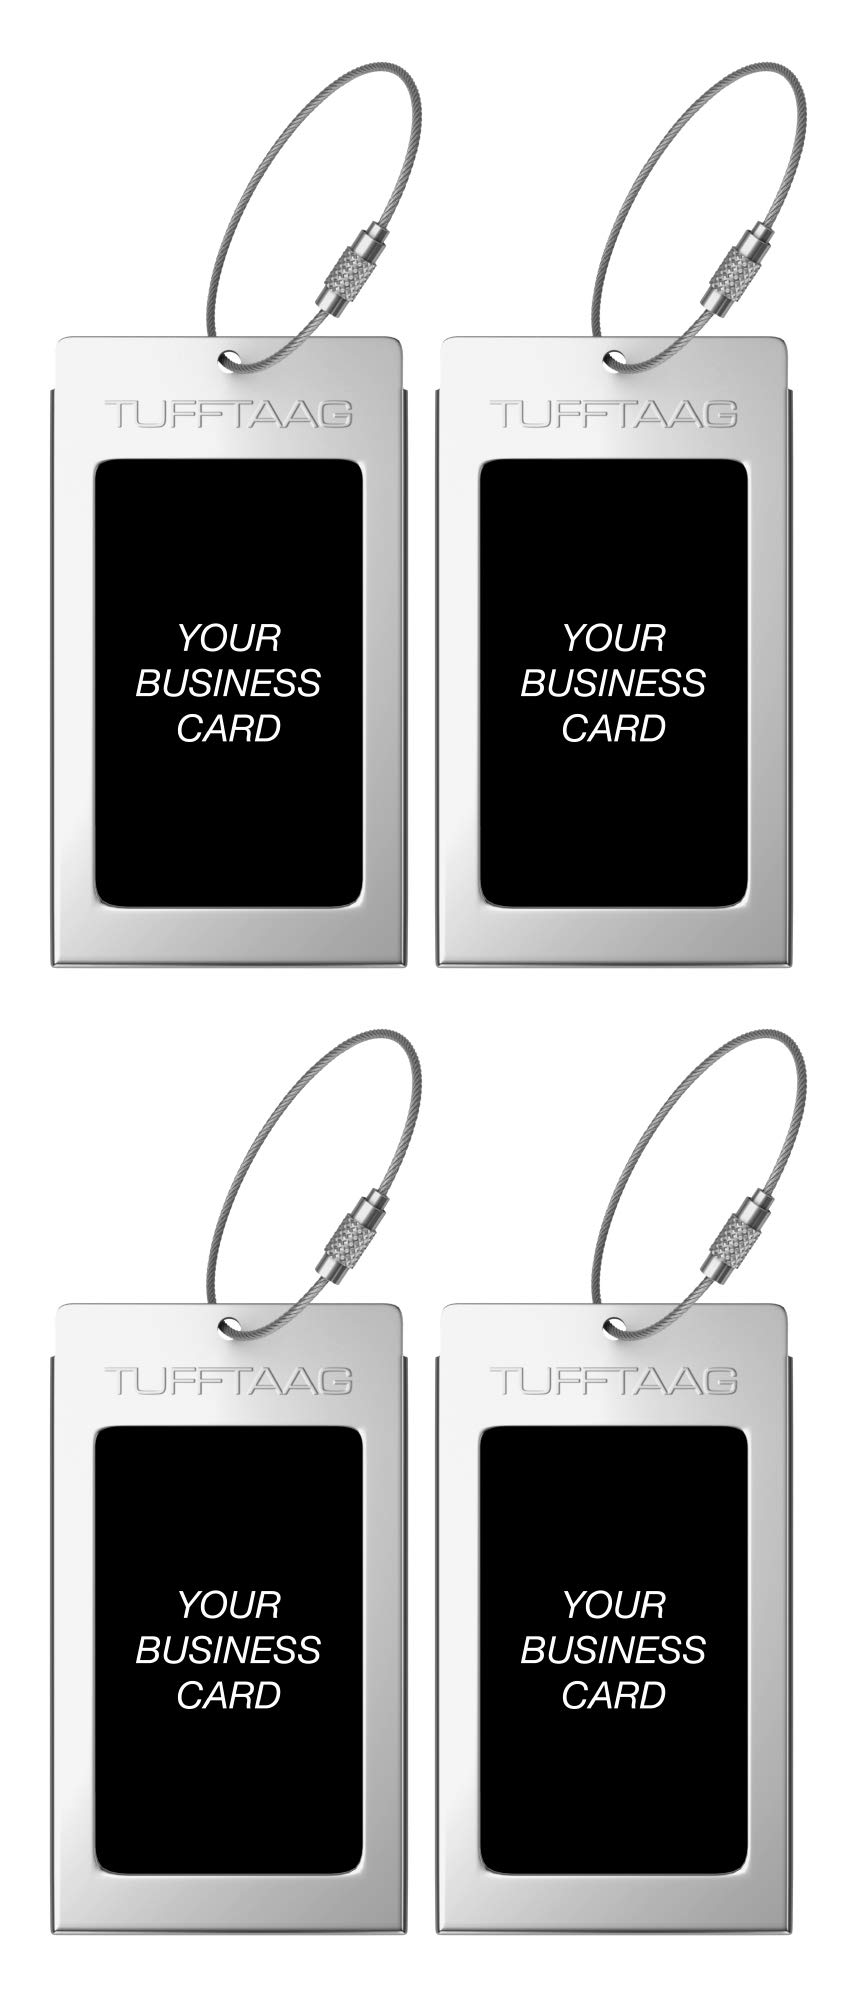 Luggage Tags TUFFTAAG for Business Cards, Metal Suitcase Labels, 4 Pack Bundle (4 Steel) by ProudGuy